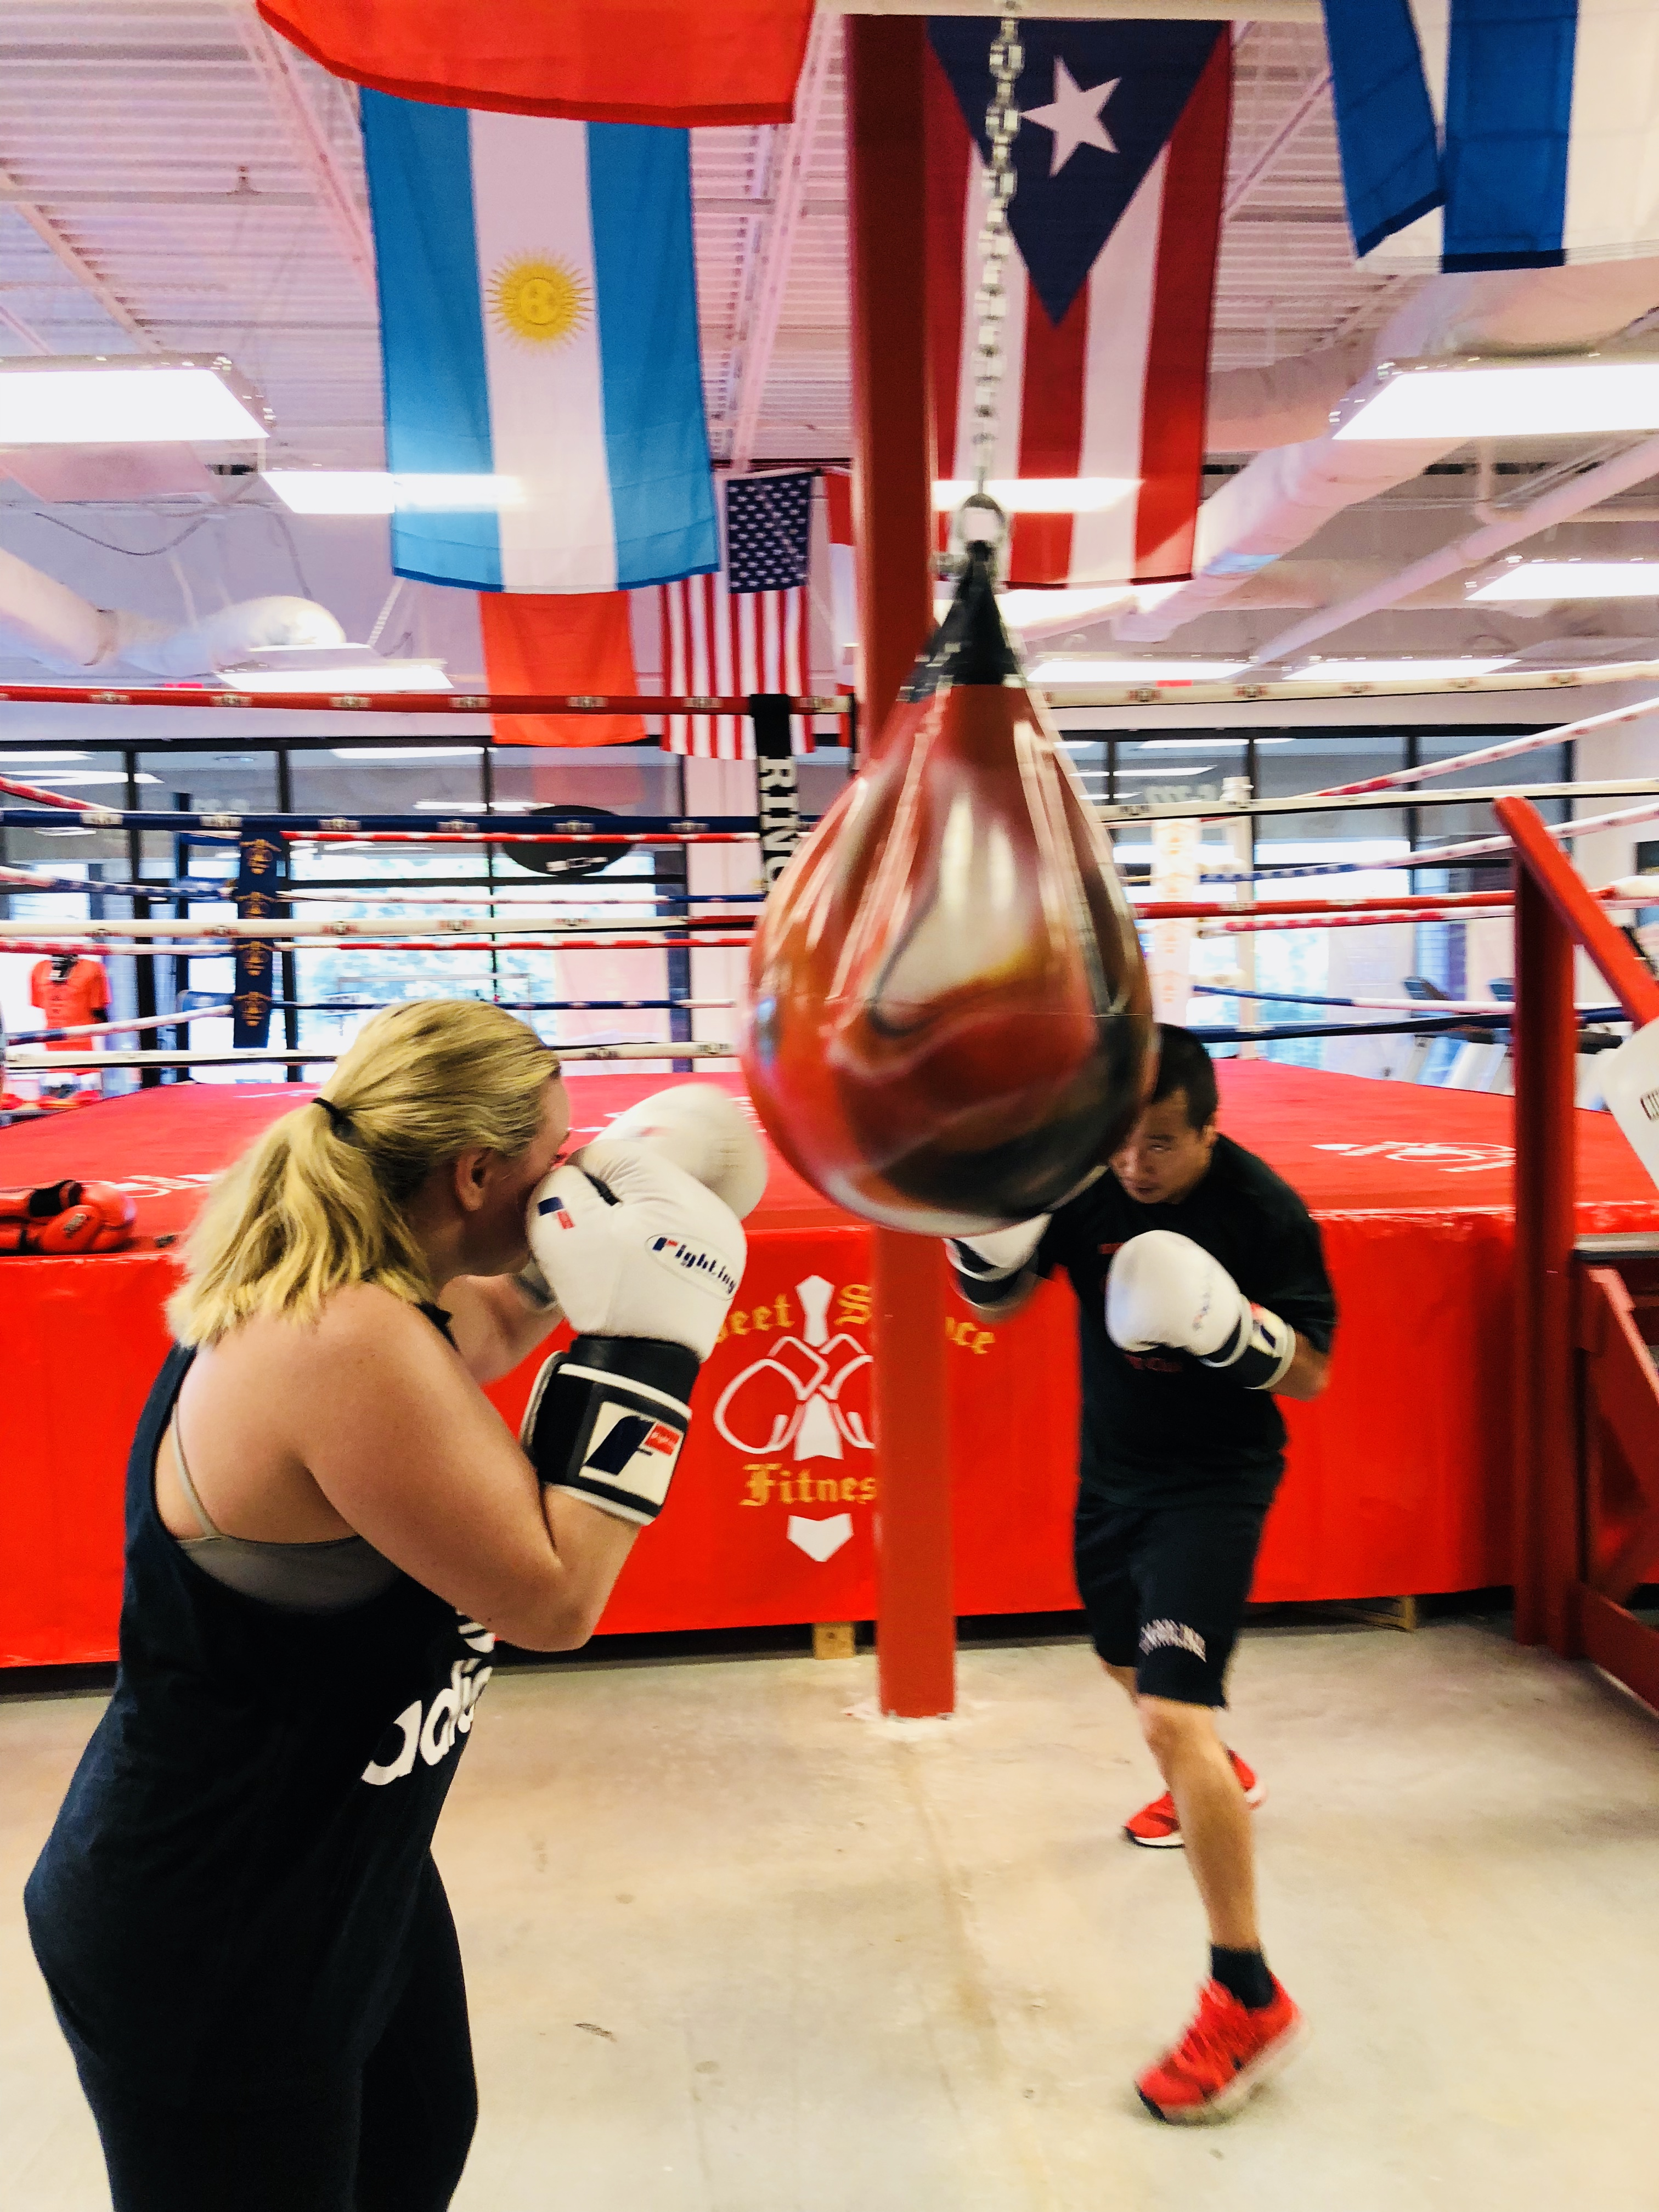 SWEET SCIENCE BOXING UNLIMITED GROUP BOXING CLASS OFFER!